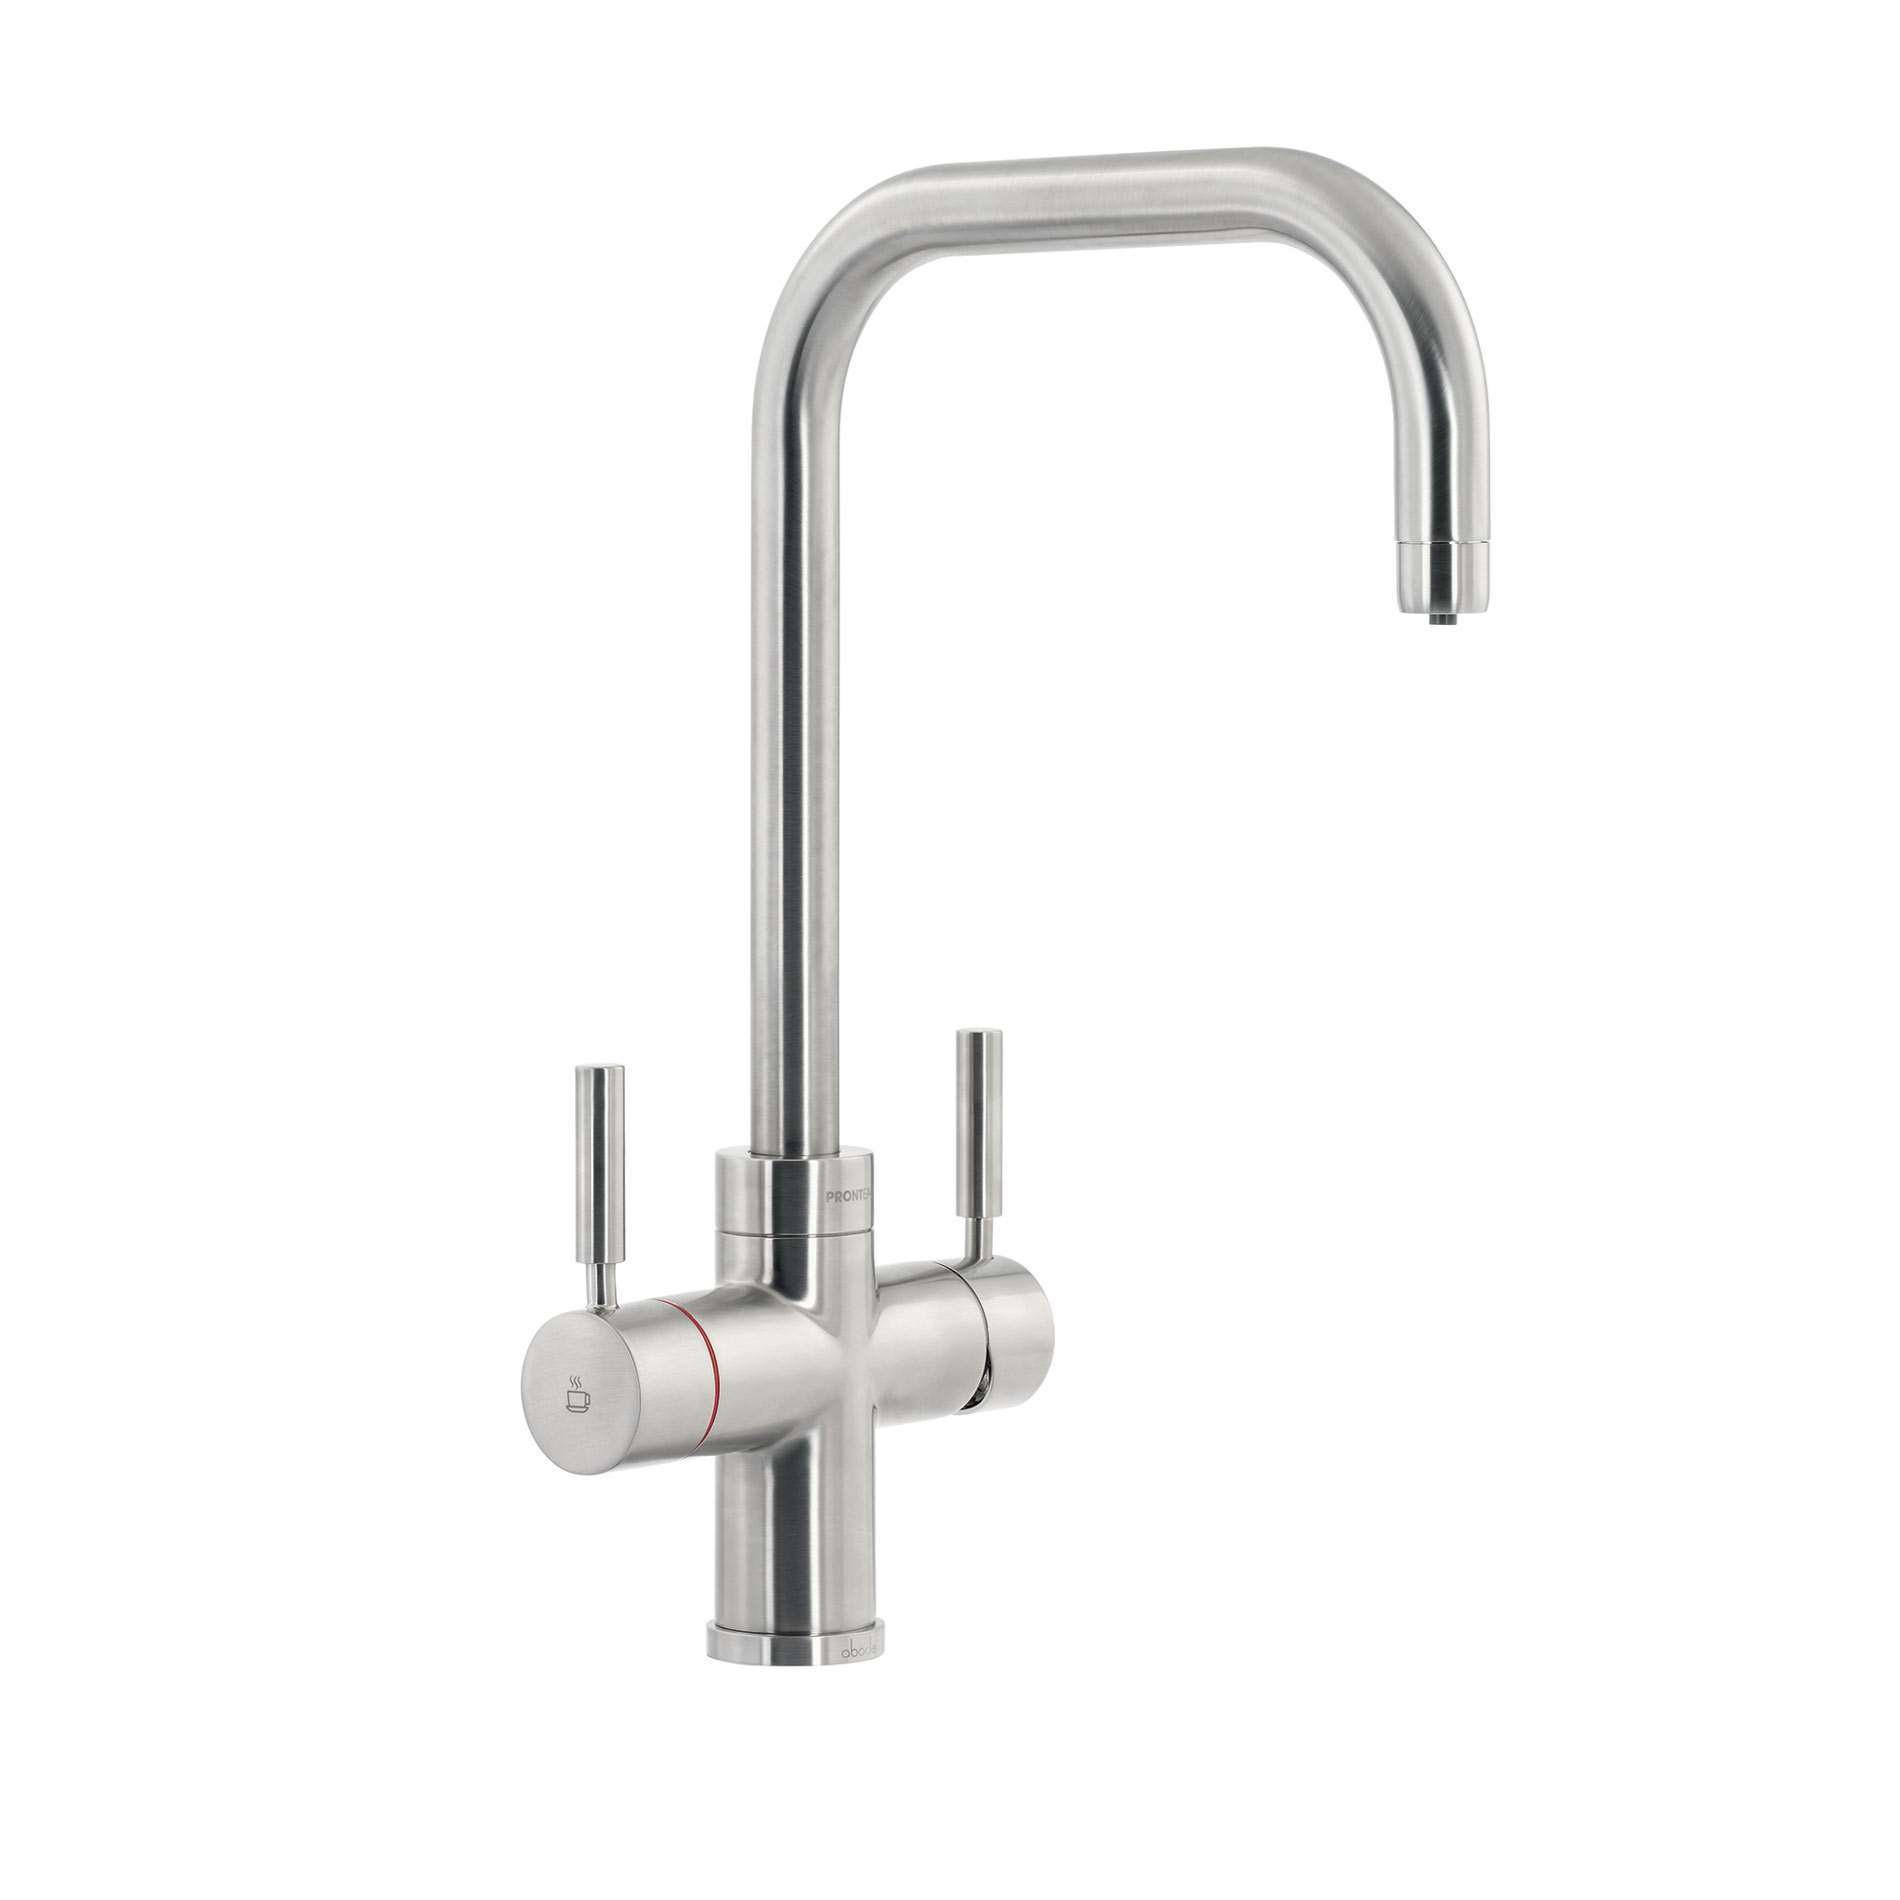 Picture of Pronteau Prostyle PT1112 Brushed Nickel Tap